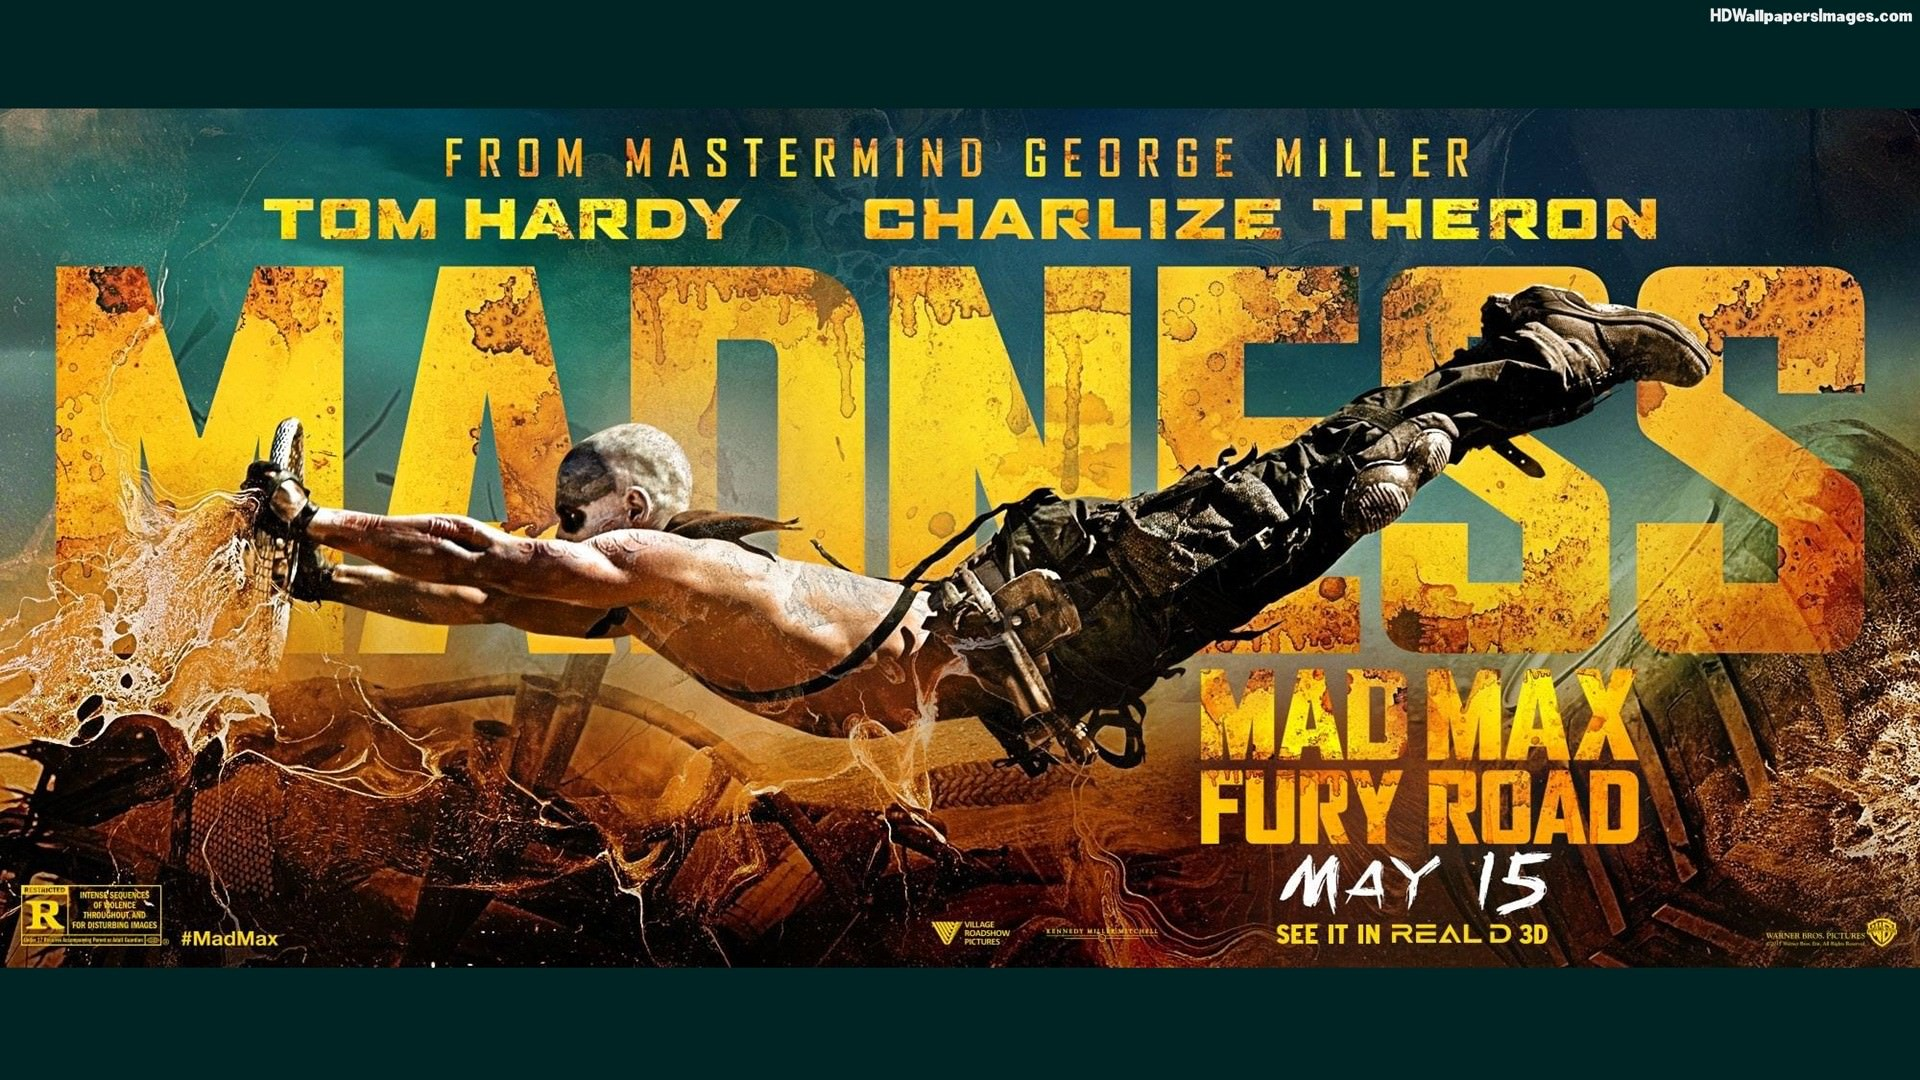 Mad Max Fury Road HD Wallpapers HD Wallpaper Backgrounds Tumblr 1920x1080